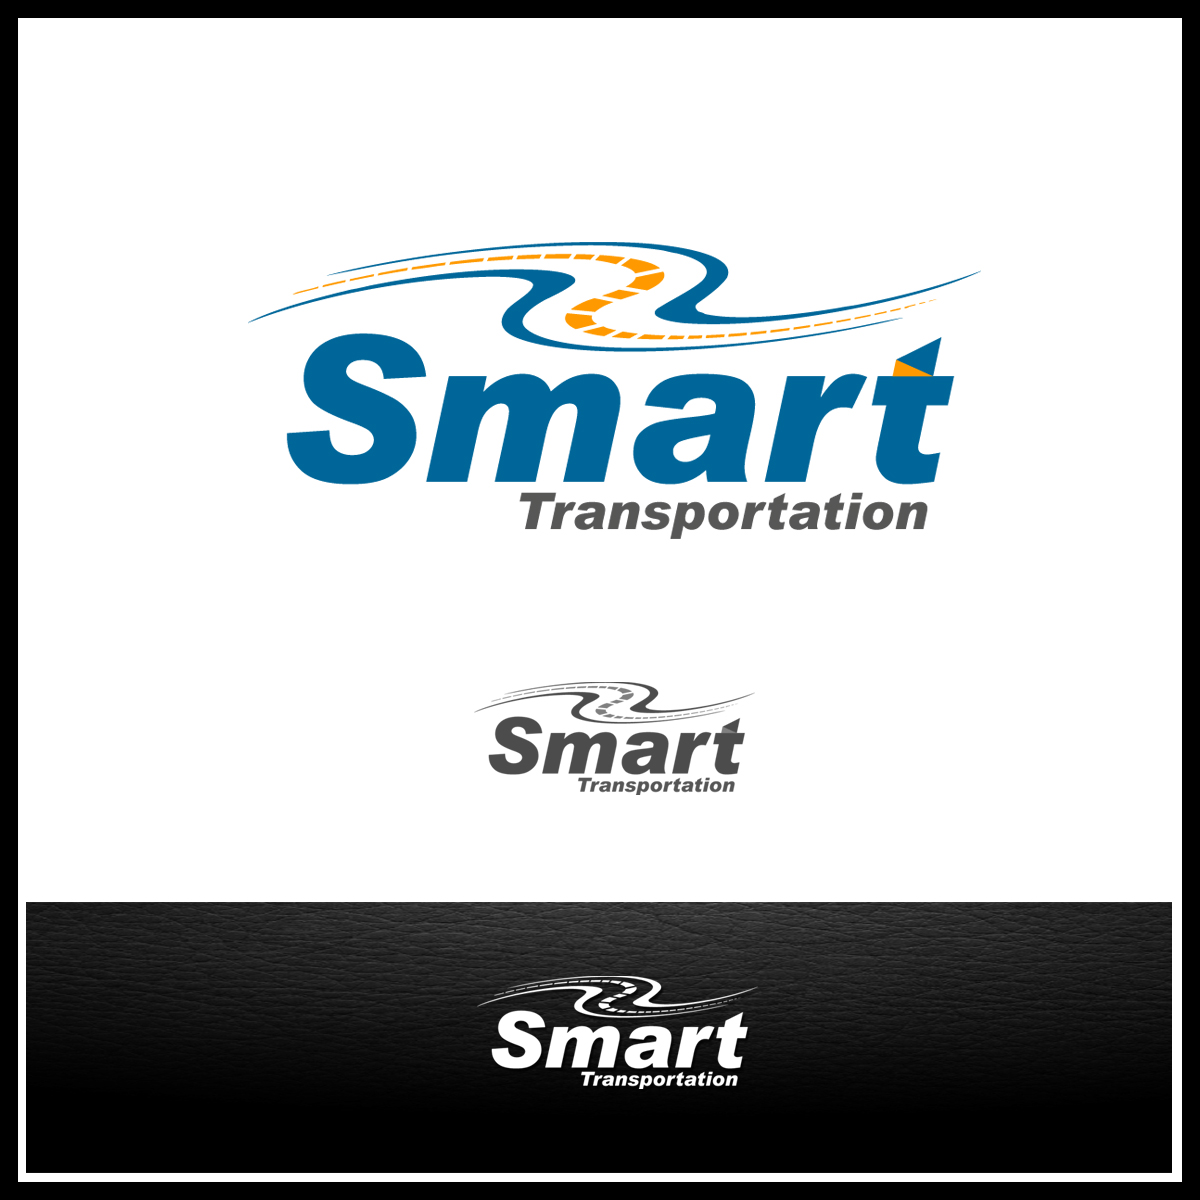 Logo Design by pixdesign - Entry No. 163 in the Logo Design Contest Imaginative Logo Design for Smart Transportation.